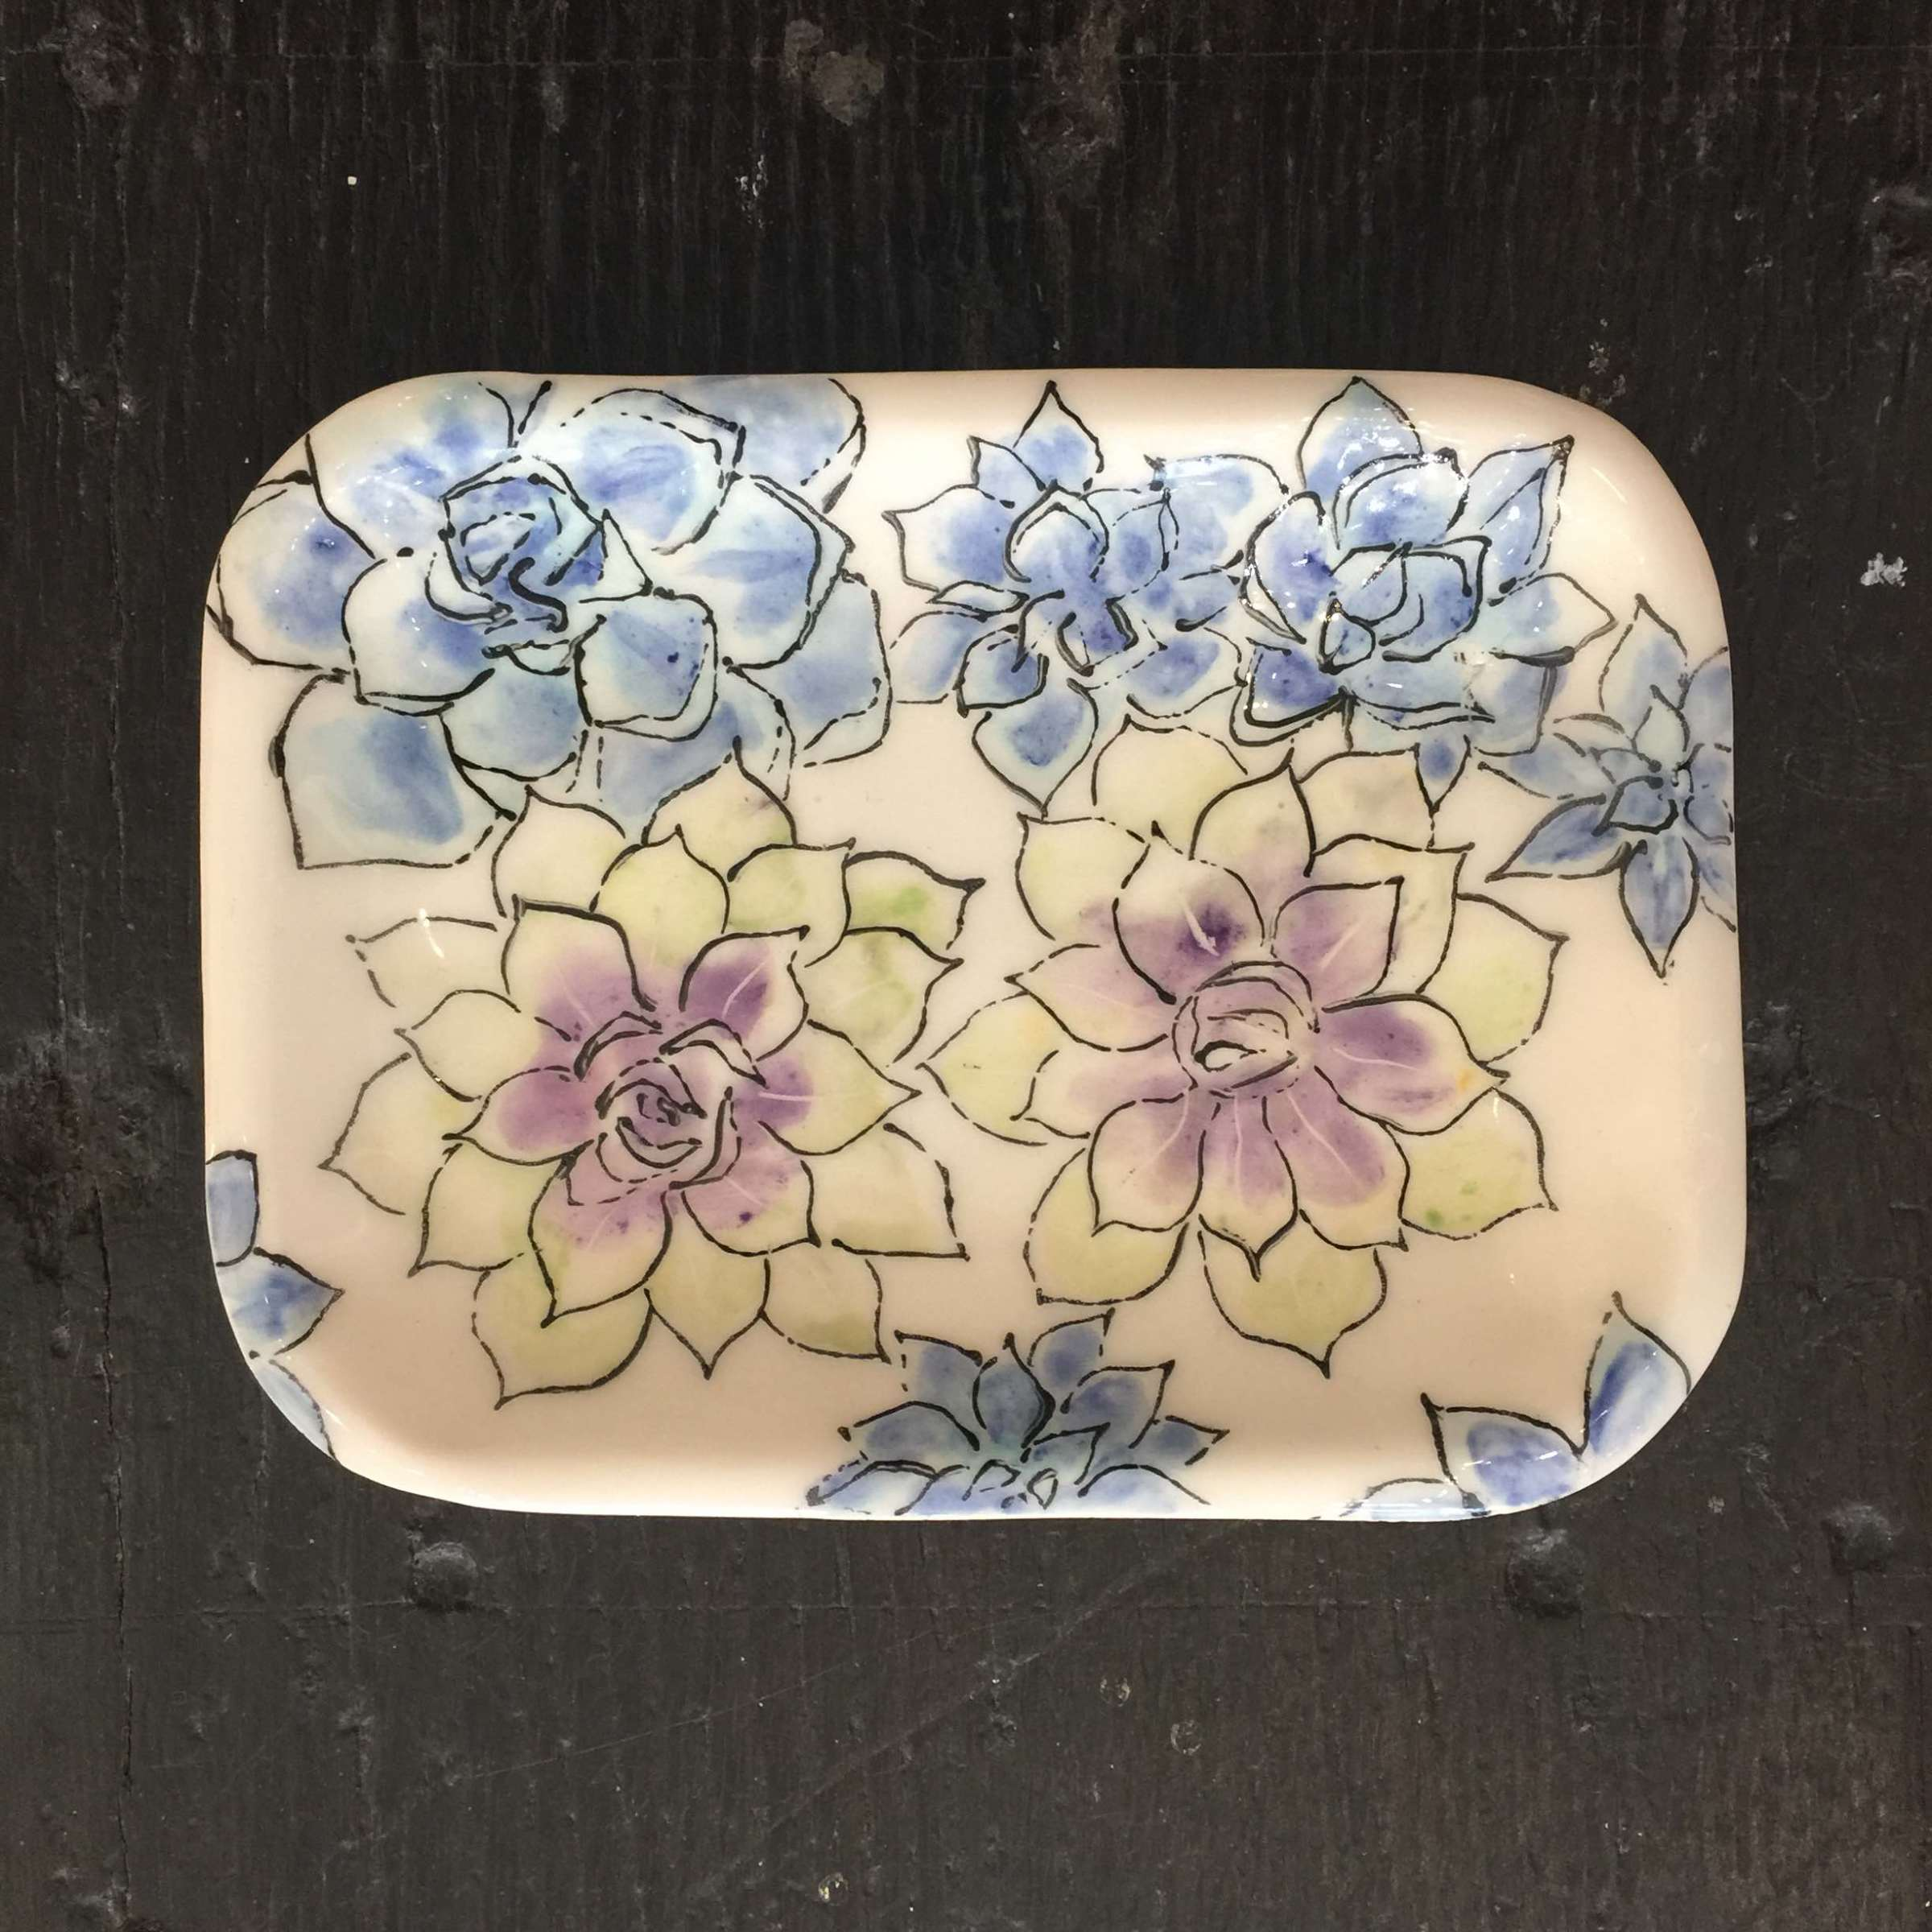 <span class=&#34;link fancybox-details-link&#34;><a href=&#34;/artists/33-kerry-edwards/works/2392-kerry-edwards-small-succulents-dish/&#34;>View Detail Page</a></span><div class=&#34;artist&#34;><strong>Kerry Edwards</strong></div> <div class=&#34;title&#34;><em>Small Succulents Dish</em></div> <div class=&#34;medium&#34;>Ceramic</div> <div class=&#34;dimensions&#34;>16 x 12 cm</div><div class=&#34;price&#34;>£40.00</div><div class=&#34;copyright_line&#34;>Copyright The Artist</div>